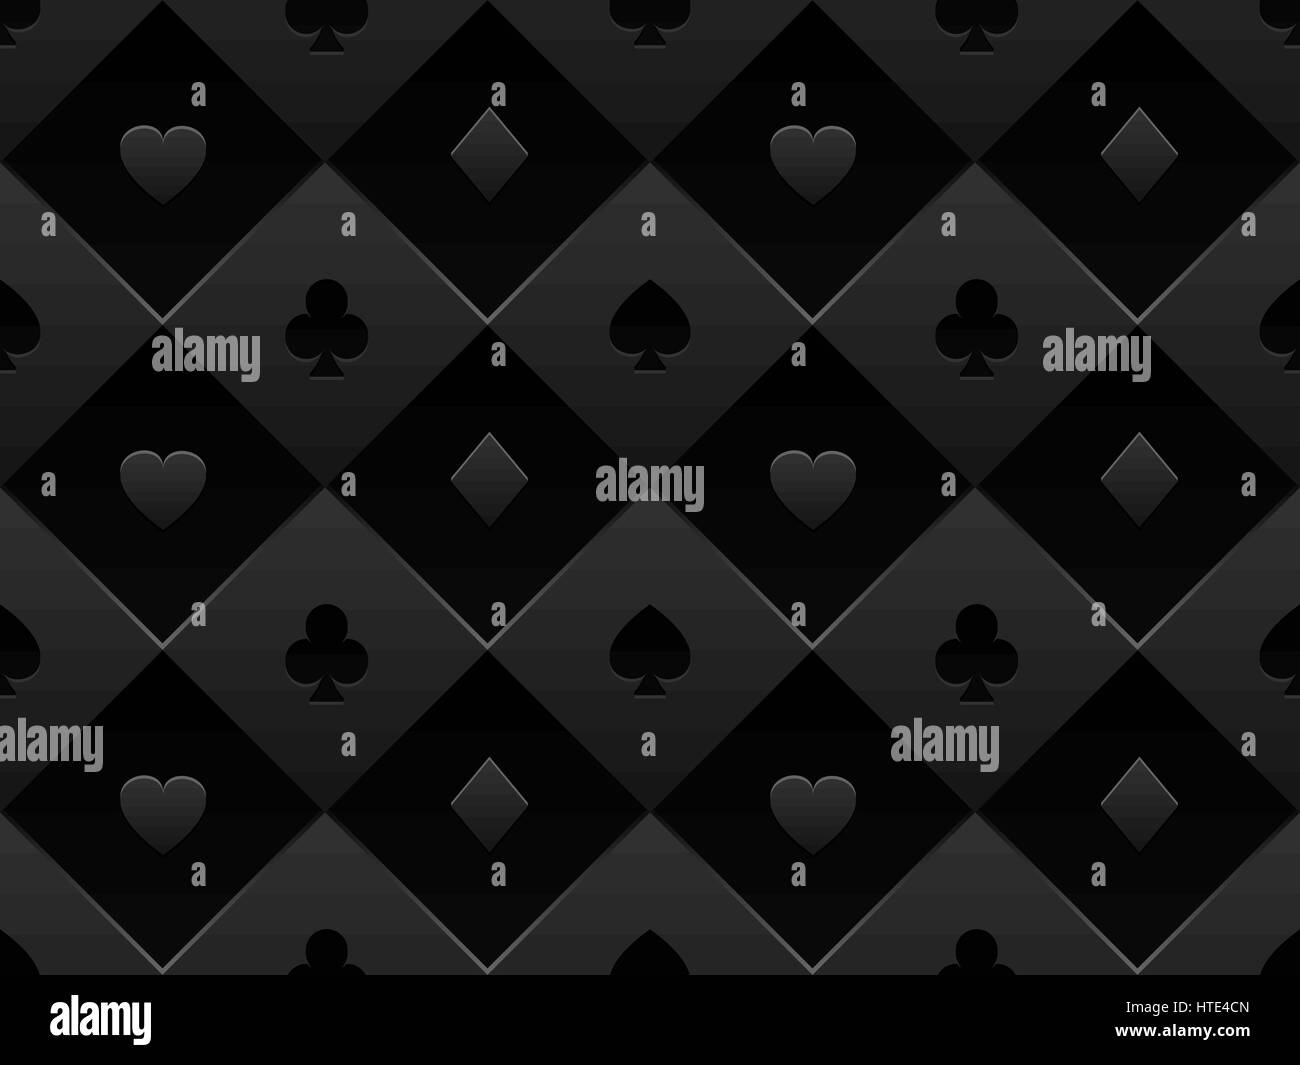 schwarzes nahtloses muster stoff pokertisch minimalistische casino vektor 3d hintergrund mit. Black Bedroom Furniture Sets. Home Design Ideas